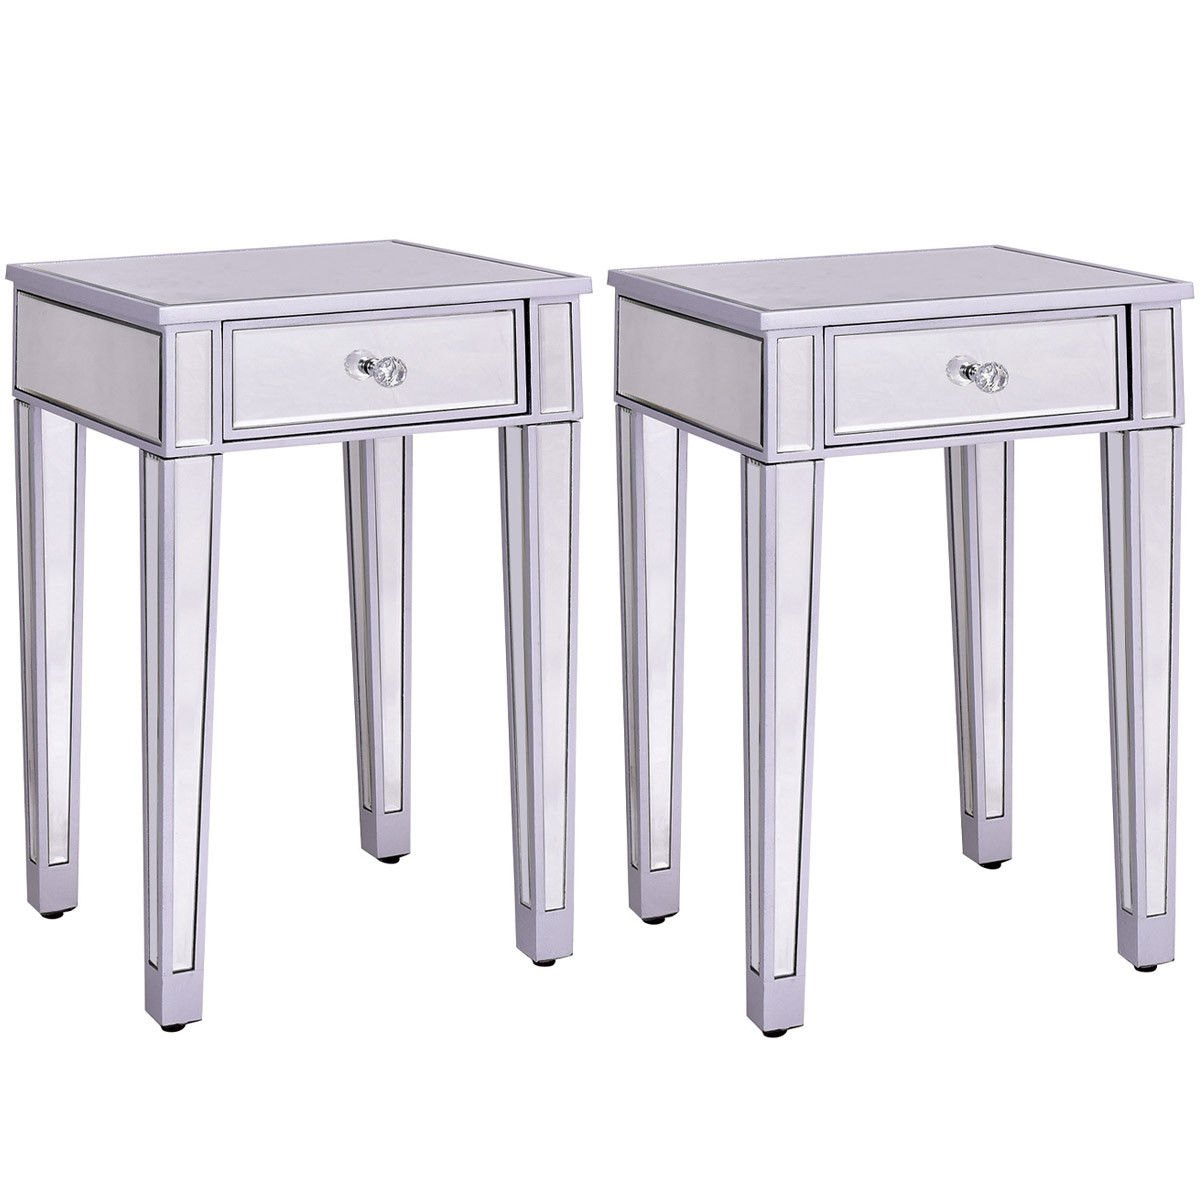 way pcs mirrored accent table nightstand end metal with drawers storage cabinet drawer simple side plans pedestal legs large outdoor wall clock pottery barn dining chairs chest